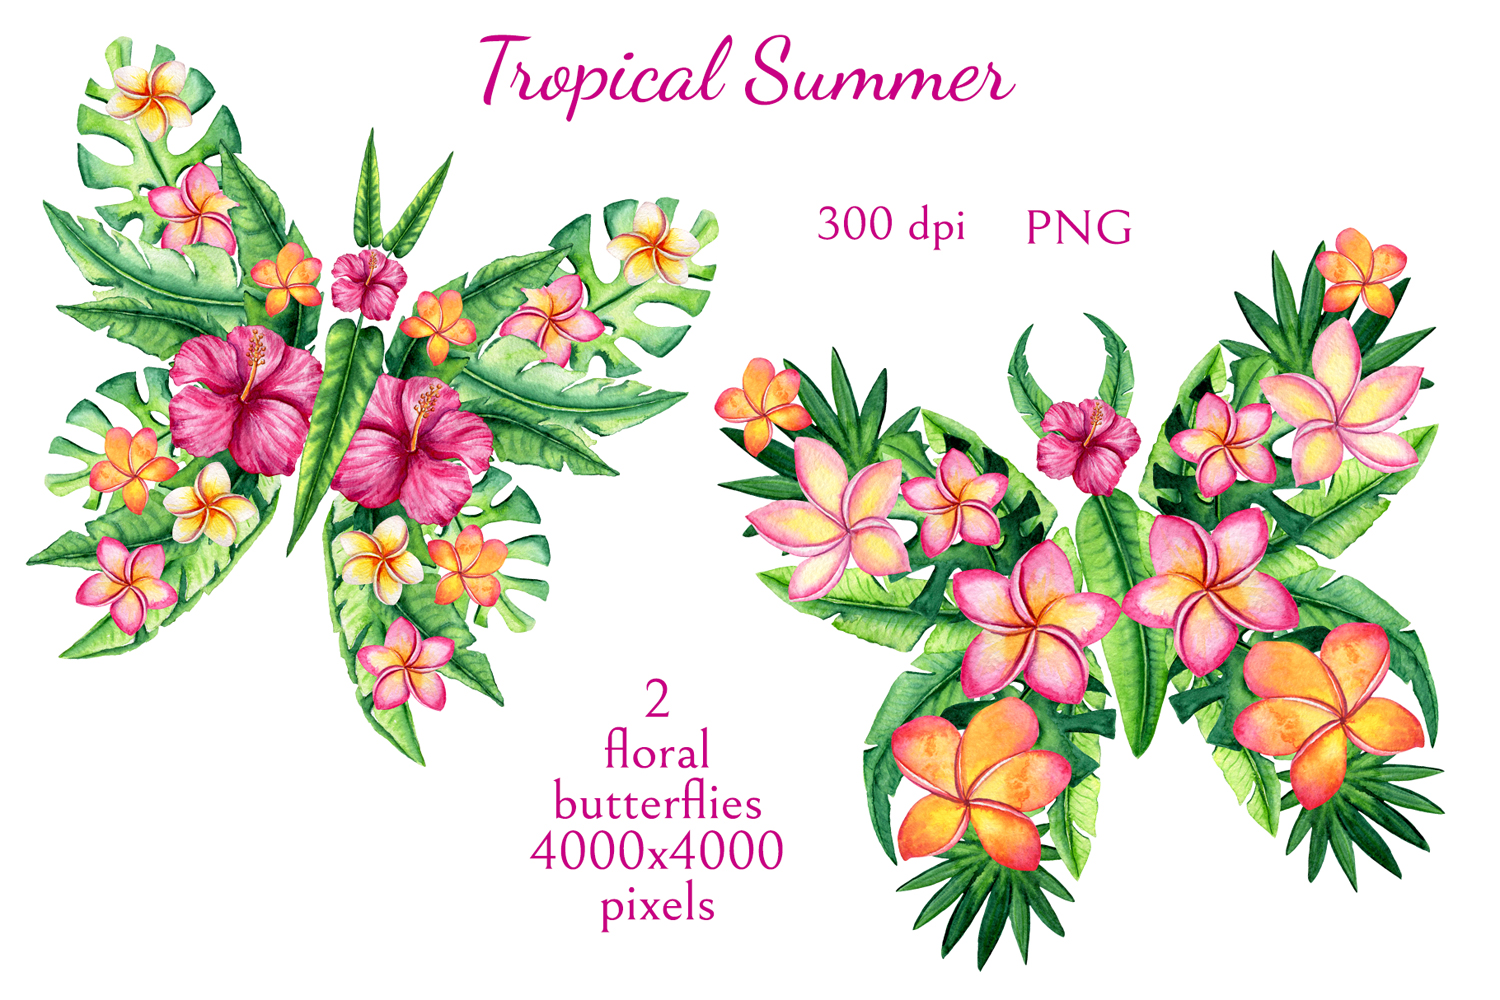 Tropical Summer example image 5